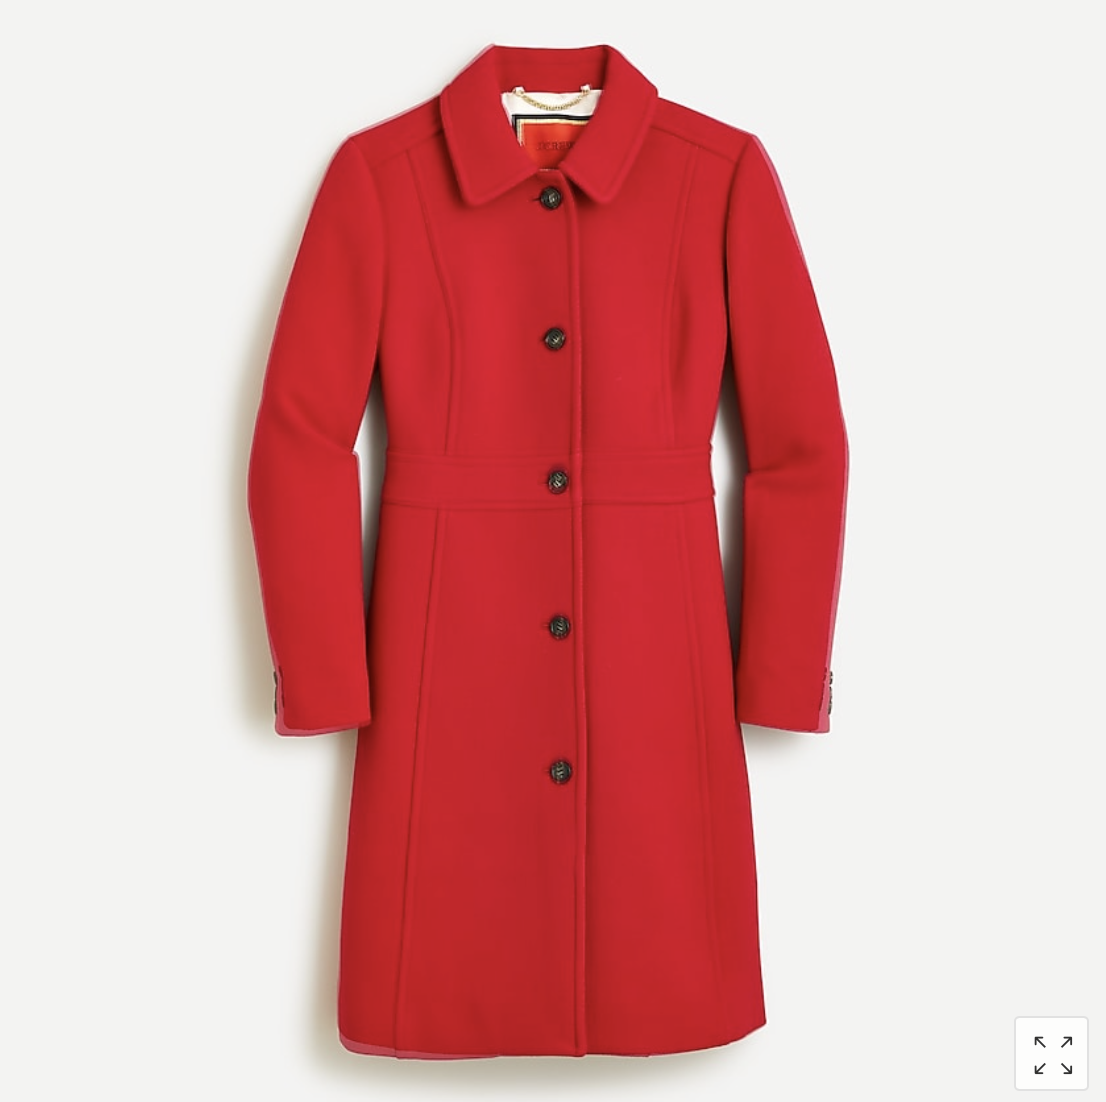 50 Off J Crew Black Friday Sale Early Access Kelly In The City In 2020 Clothes Outerwear Women Coat